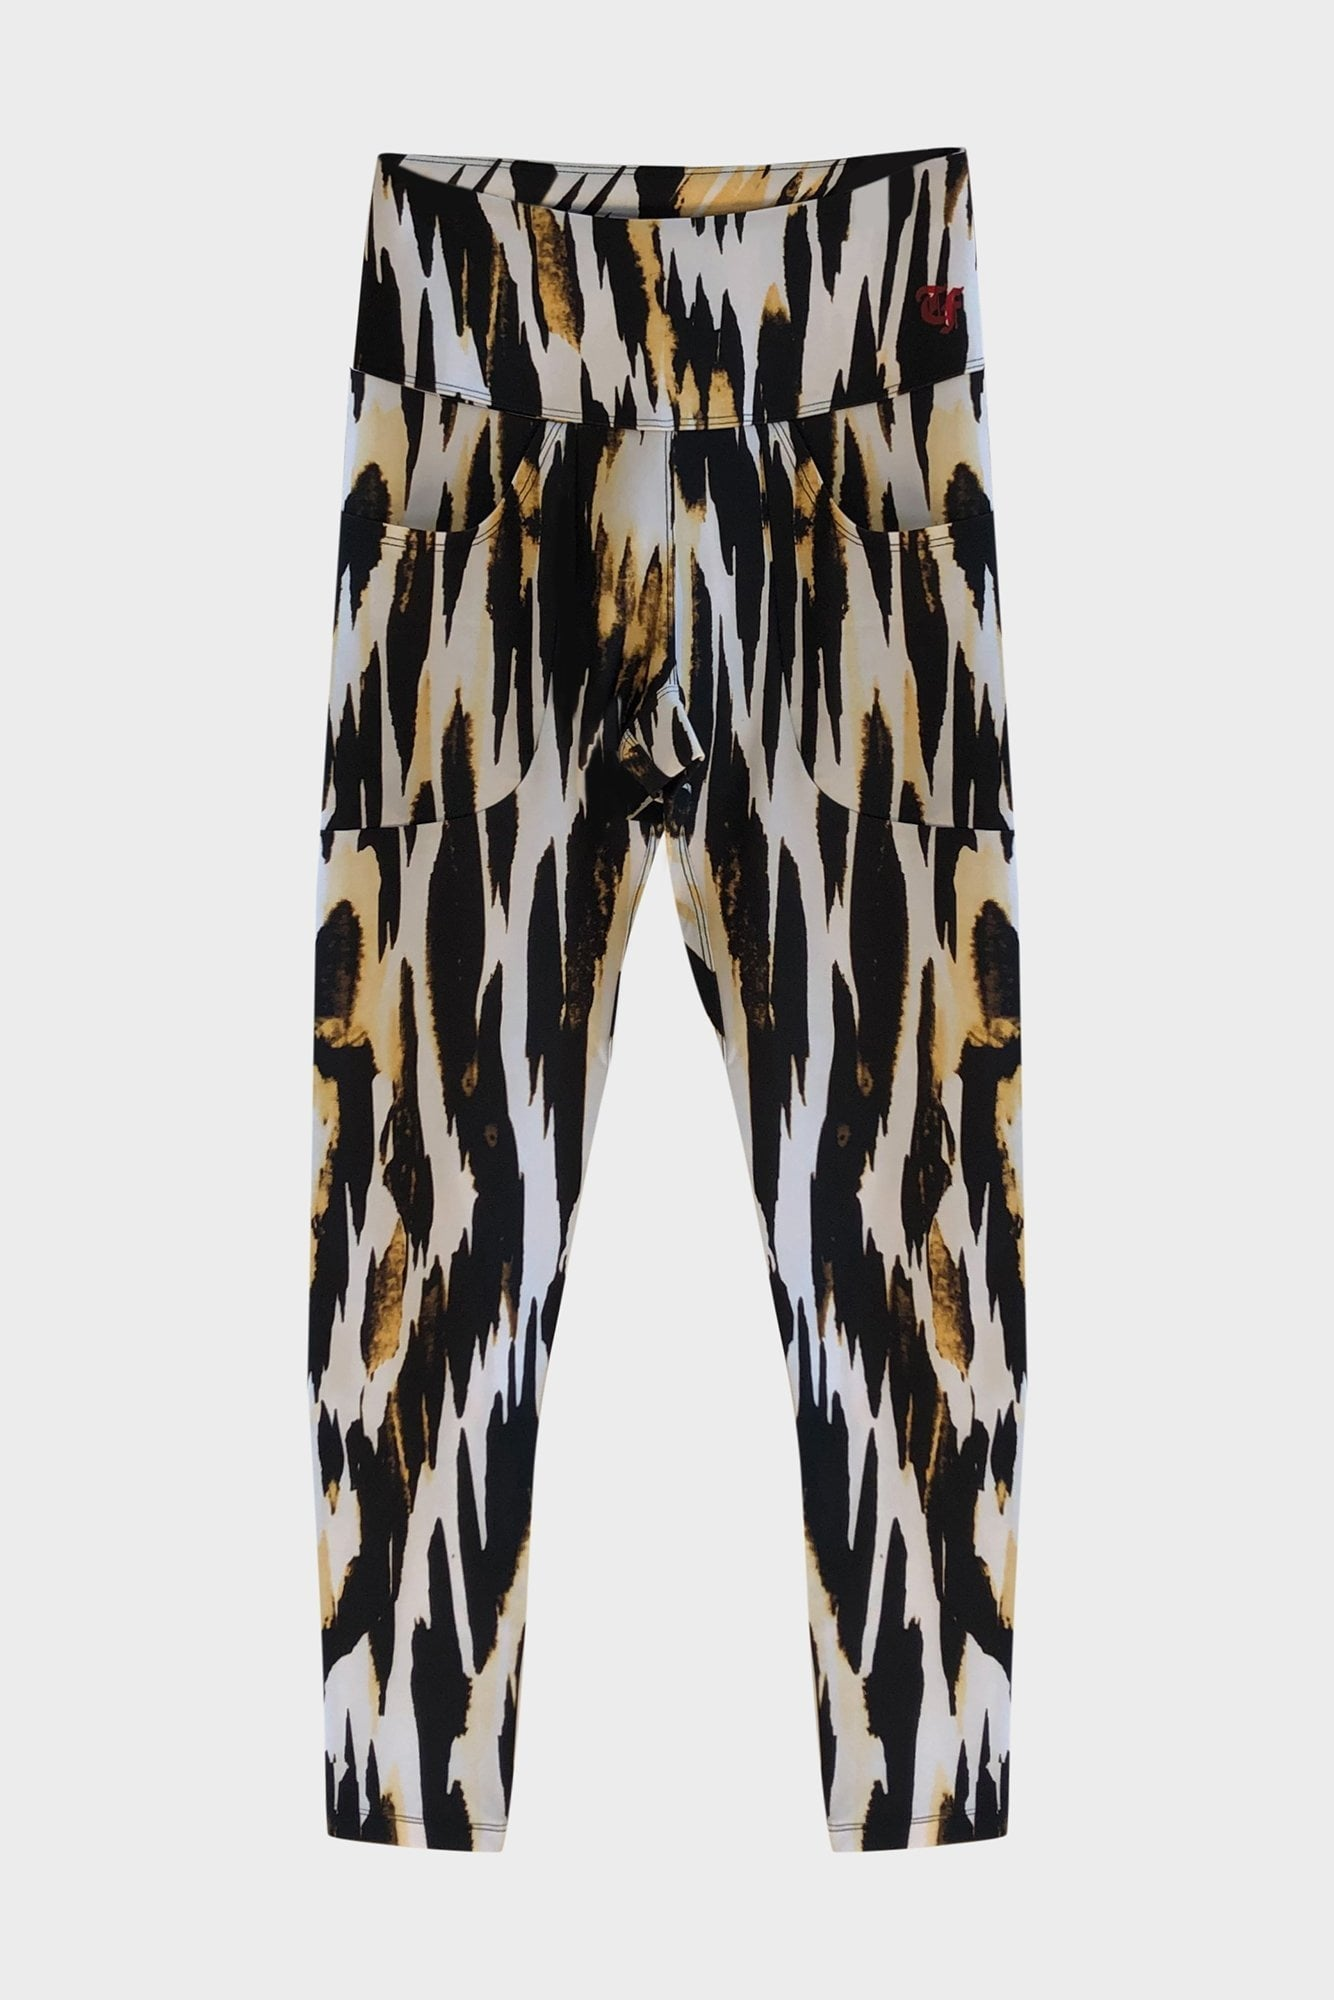 Patch Pocket Legging - Abstract Zebra